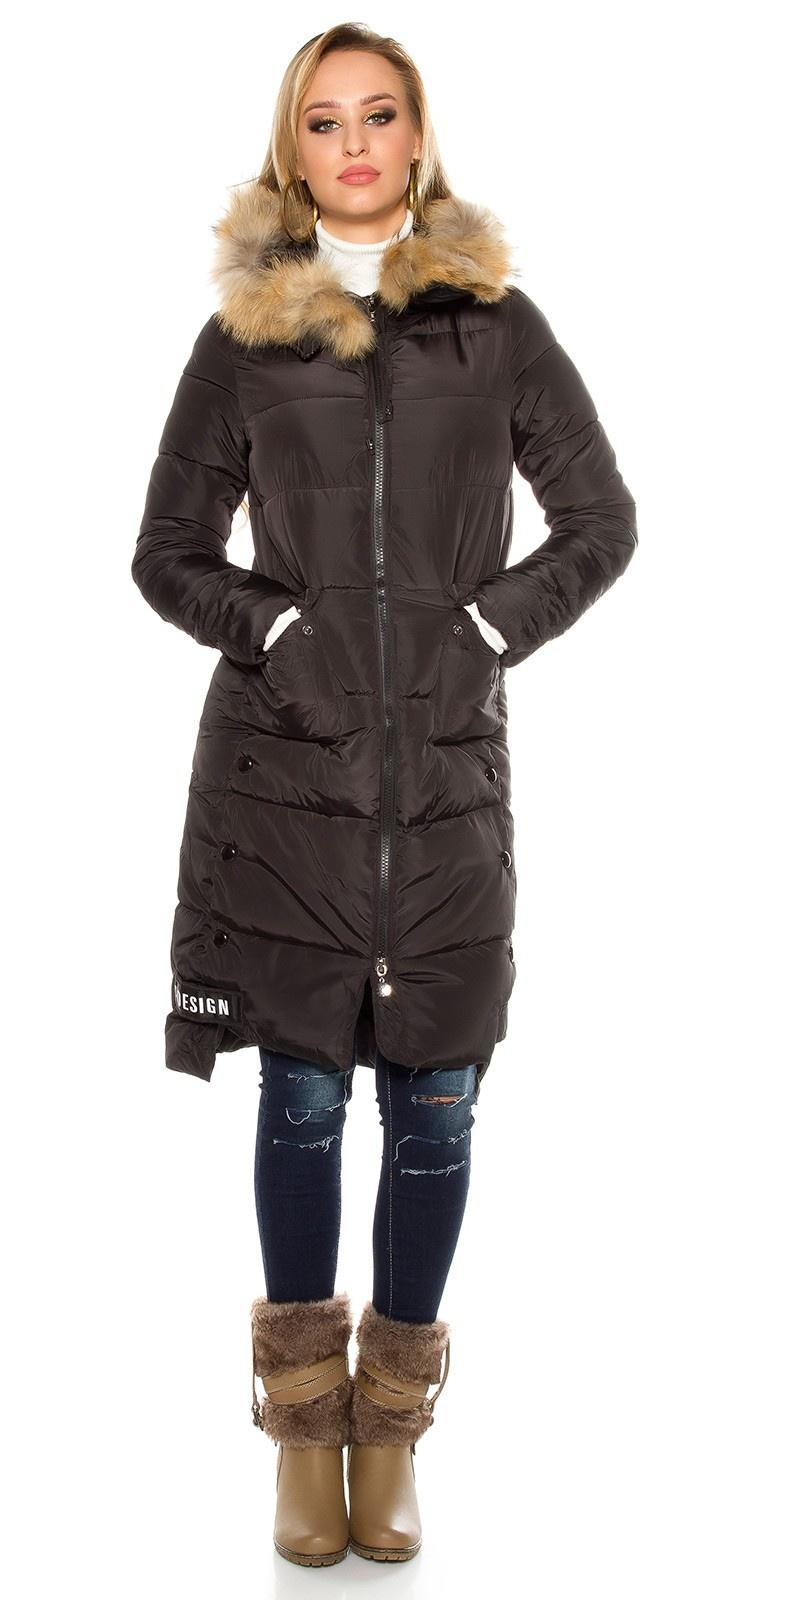 Trendy stitched winter coat with hood Black